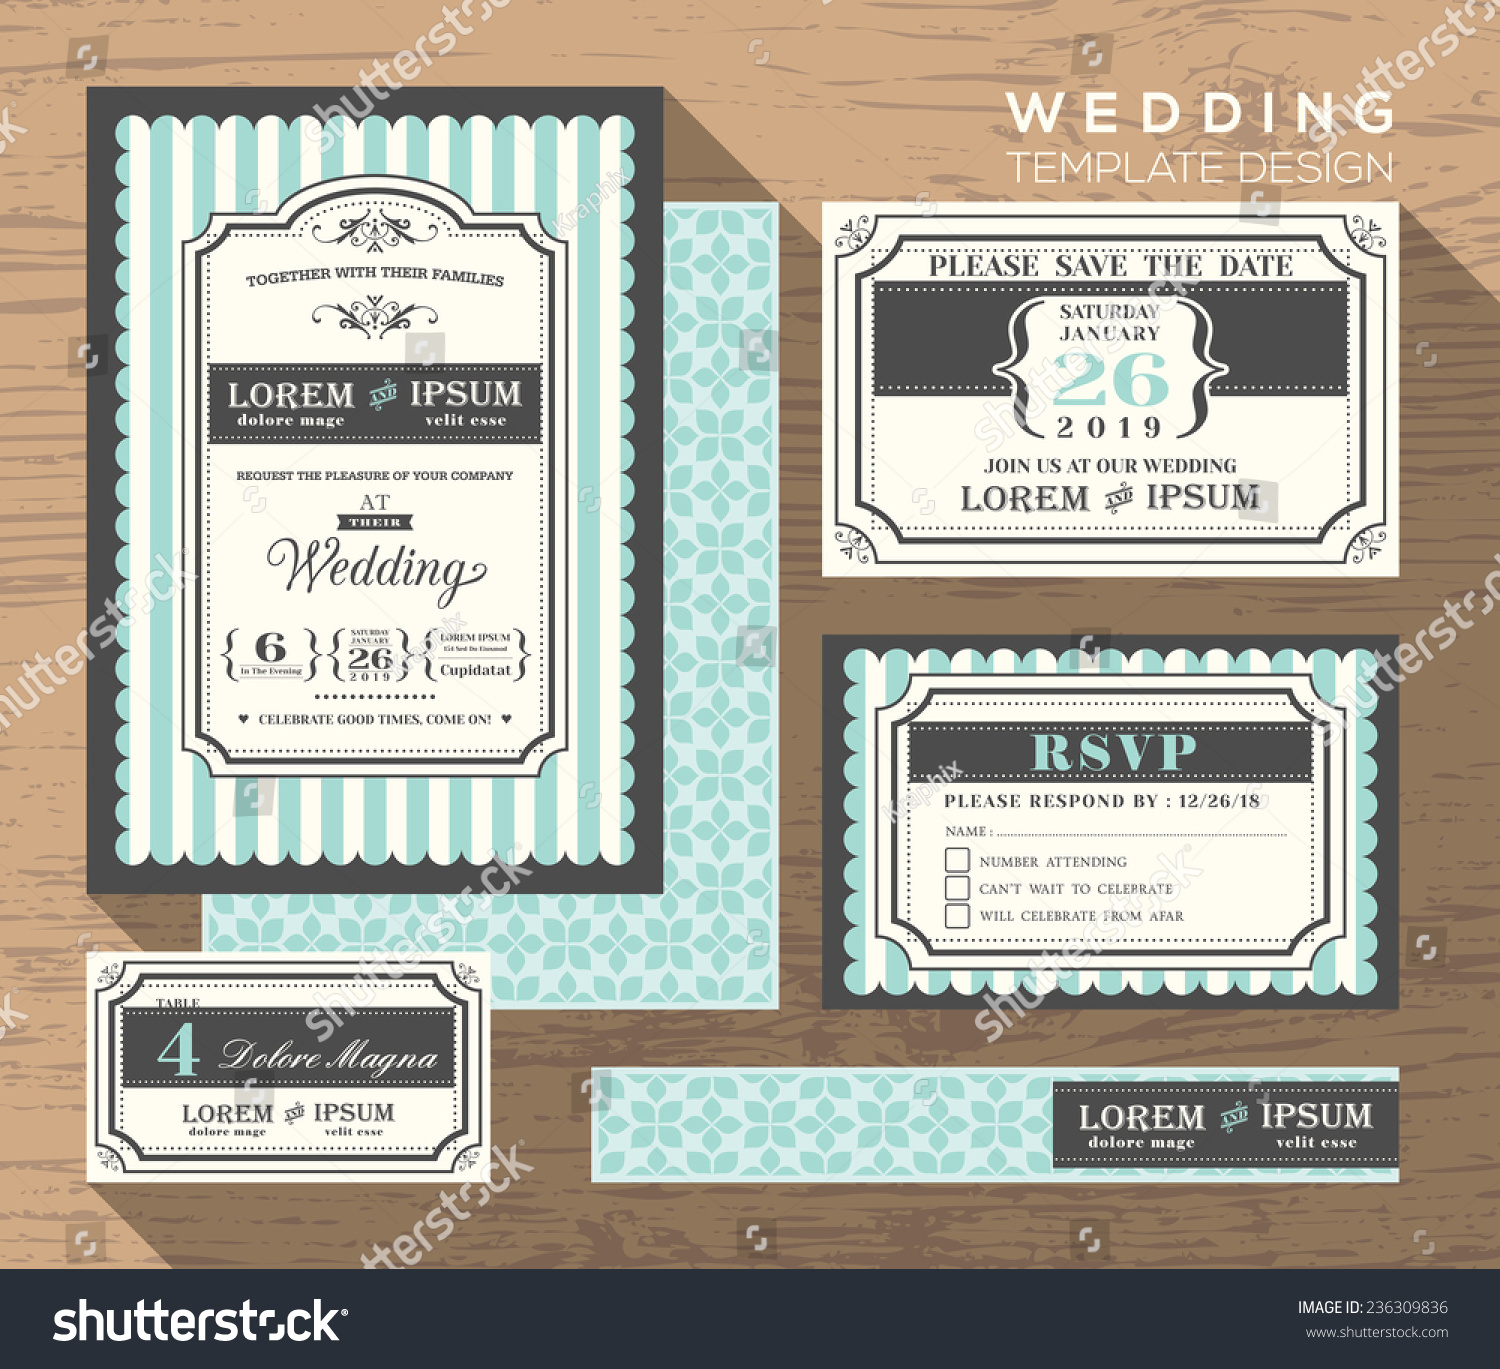 Wedding Invitation Set Design Template Vector Place Card Response Card Save  The Date Card